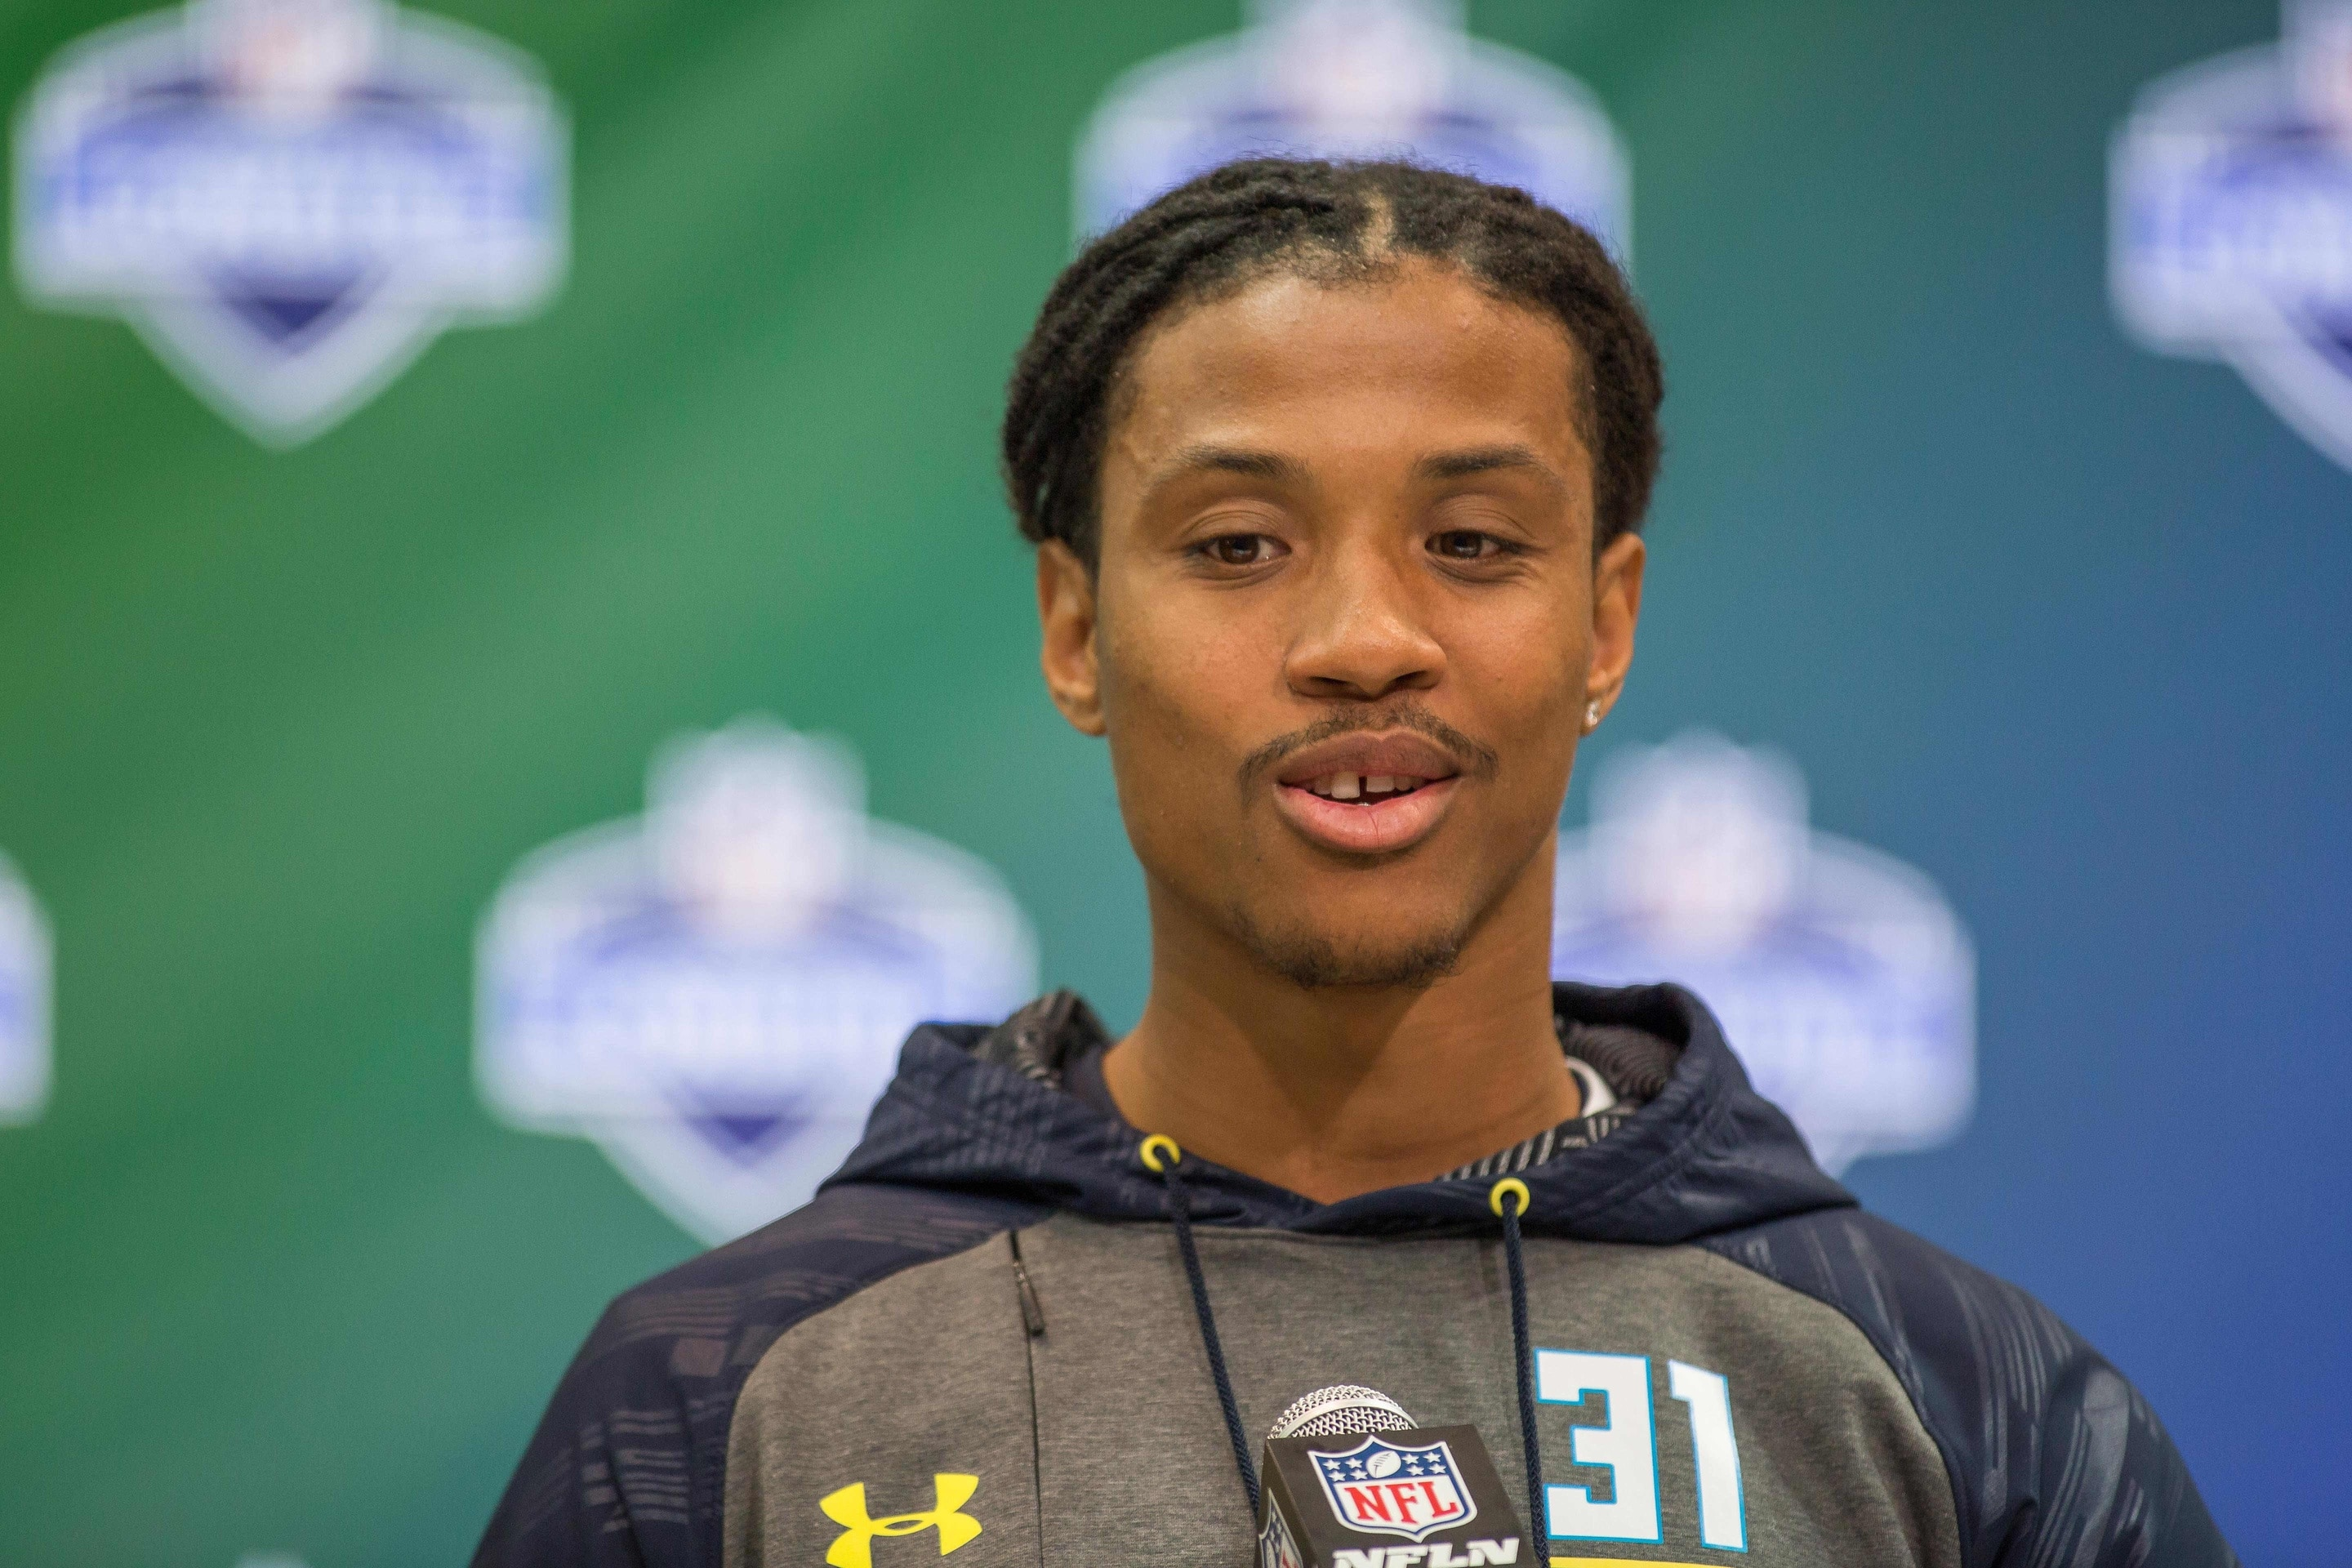 Mar 5, 2017; Indianapolis, IN, USA; Washington defensive back Kevin King speaks to the media during the 2017 combine at Indiana Convention Center. Mandatory Credit: Trevor Ruszkowski-USA TODAY Sports